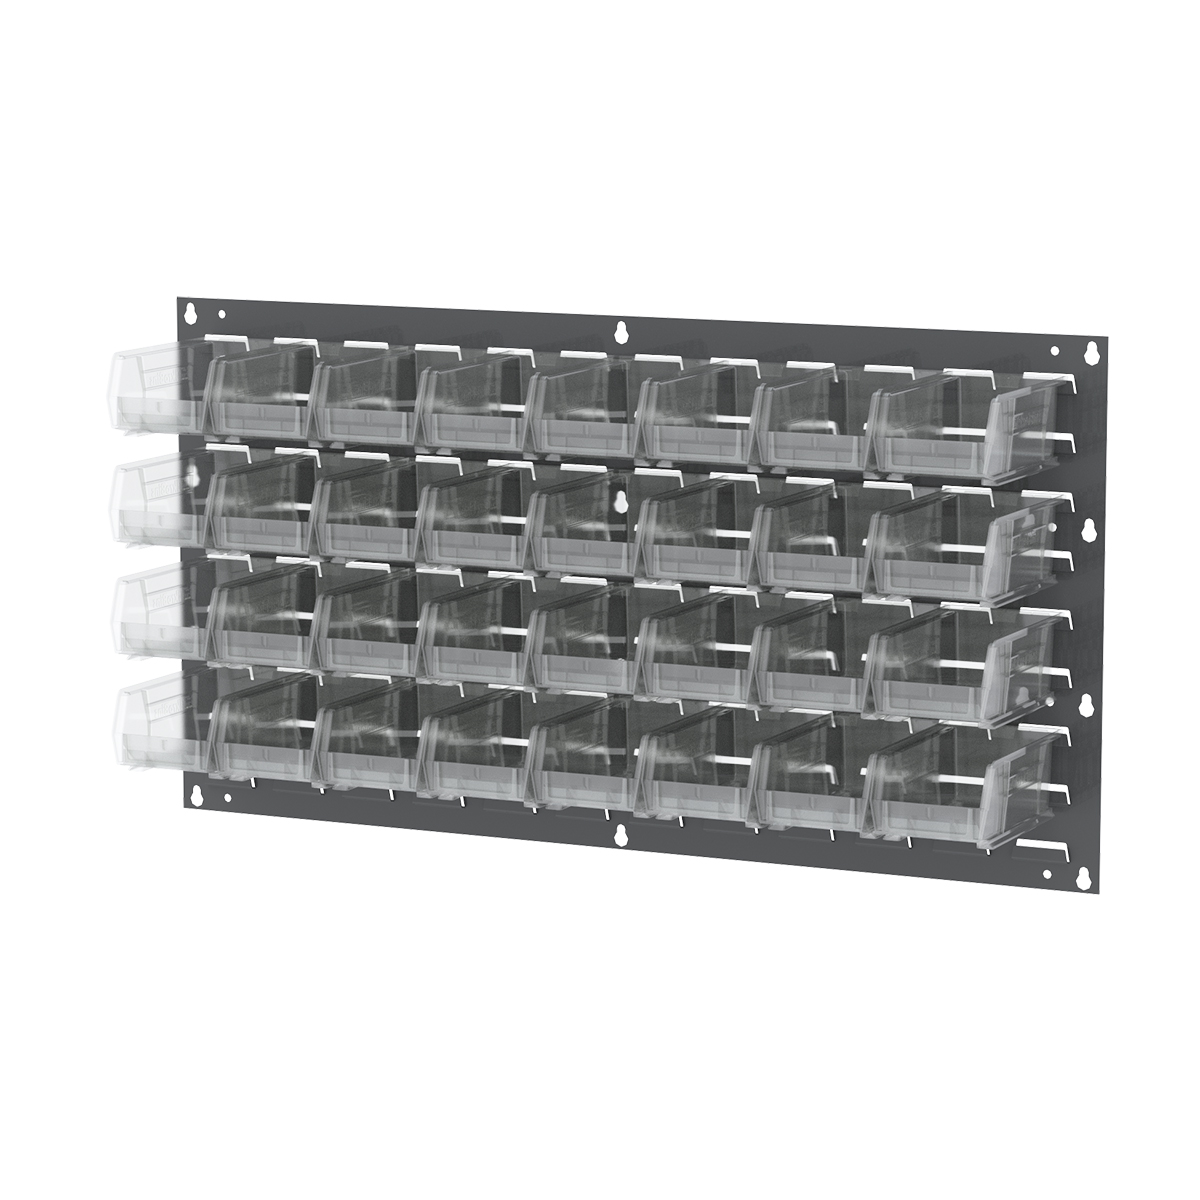 Item DISCONTINUED by Manufacturer.  Louvered Wall Panel, 35-3/4 x 19, w/ 32 AkroBins 30220SCLAR, Gray/Clear (30636220SC).  This item sold in carton quantities of 1.